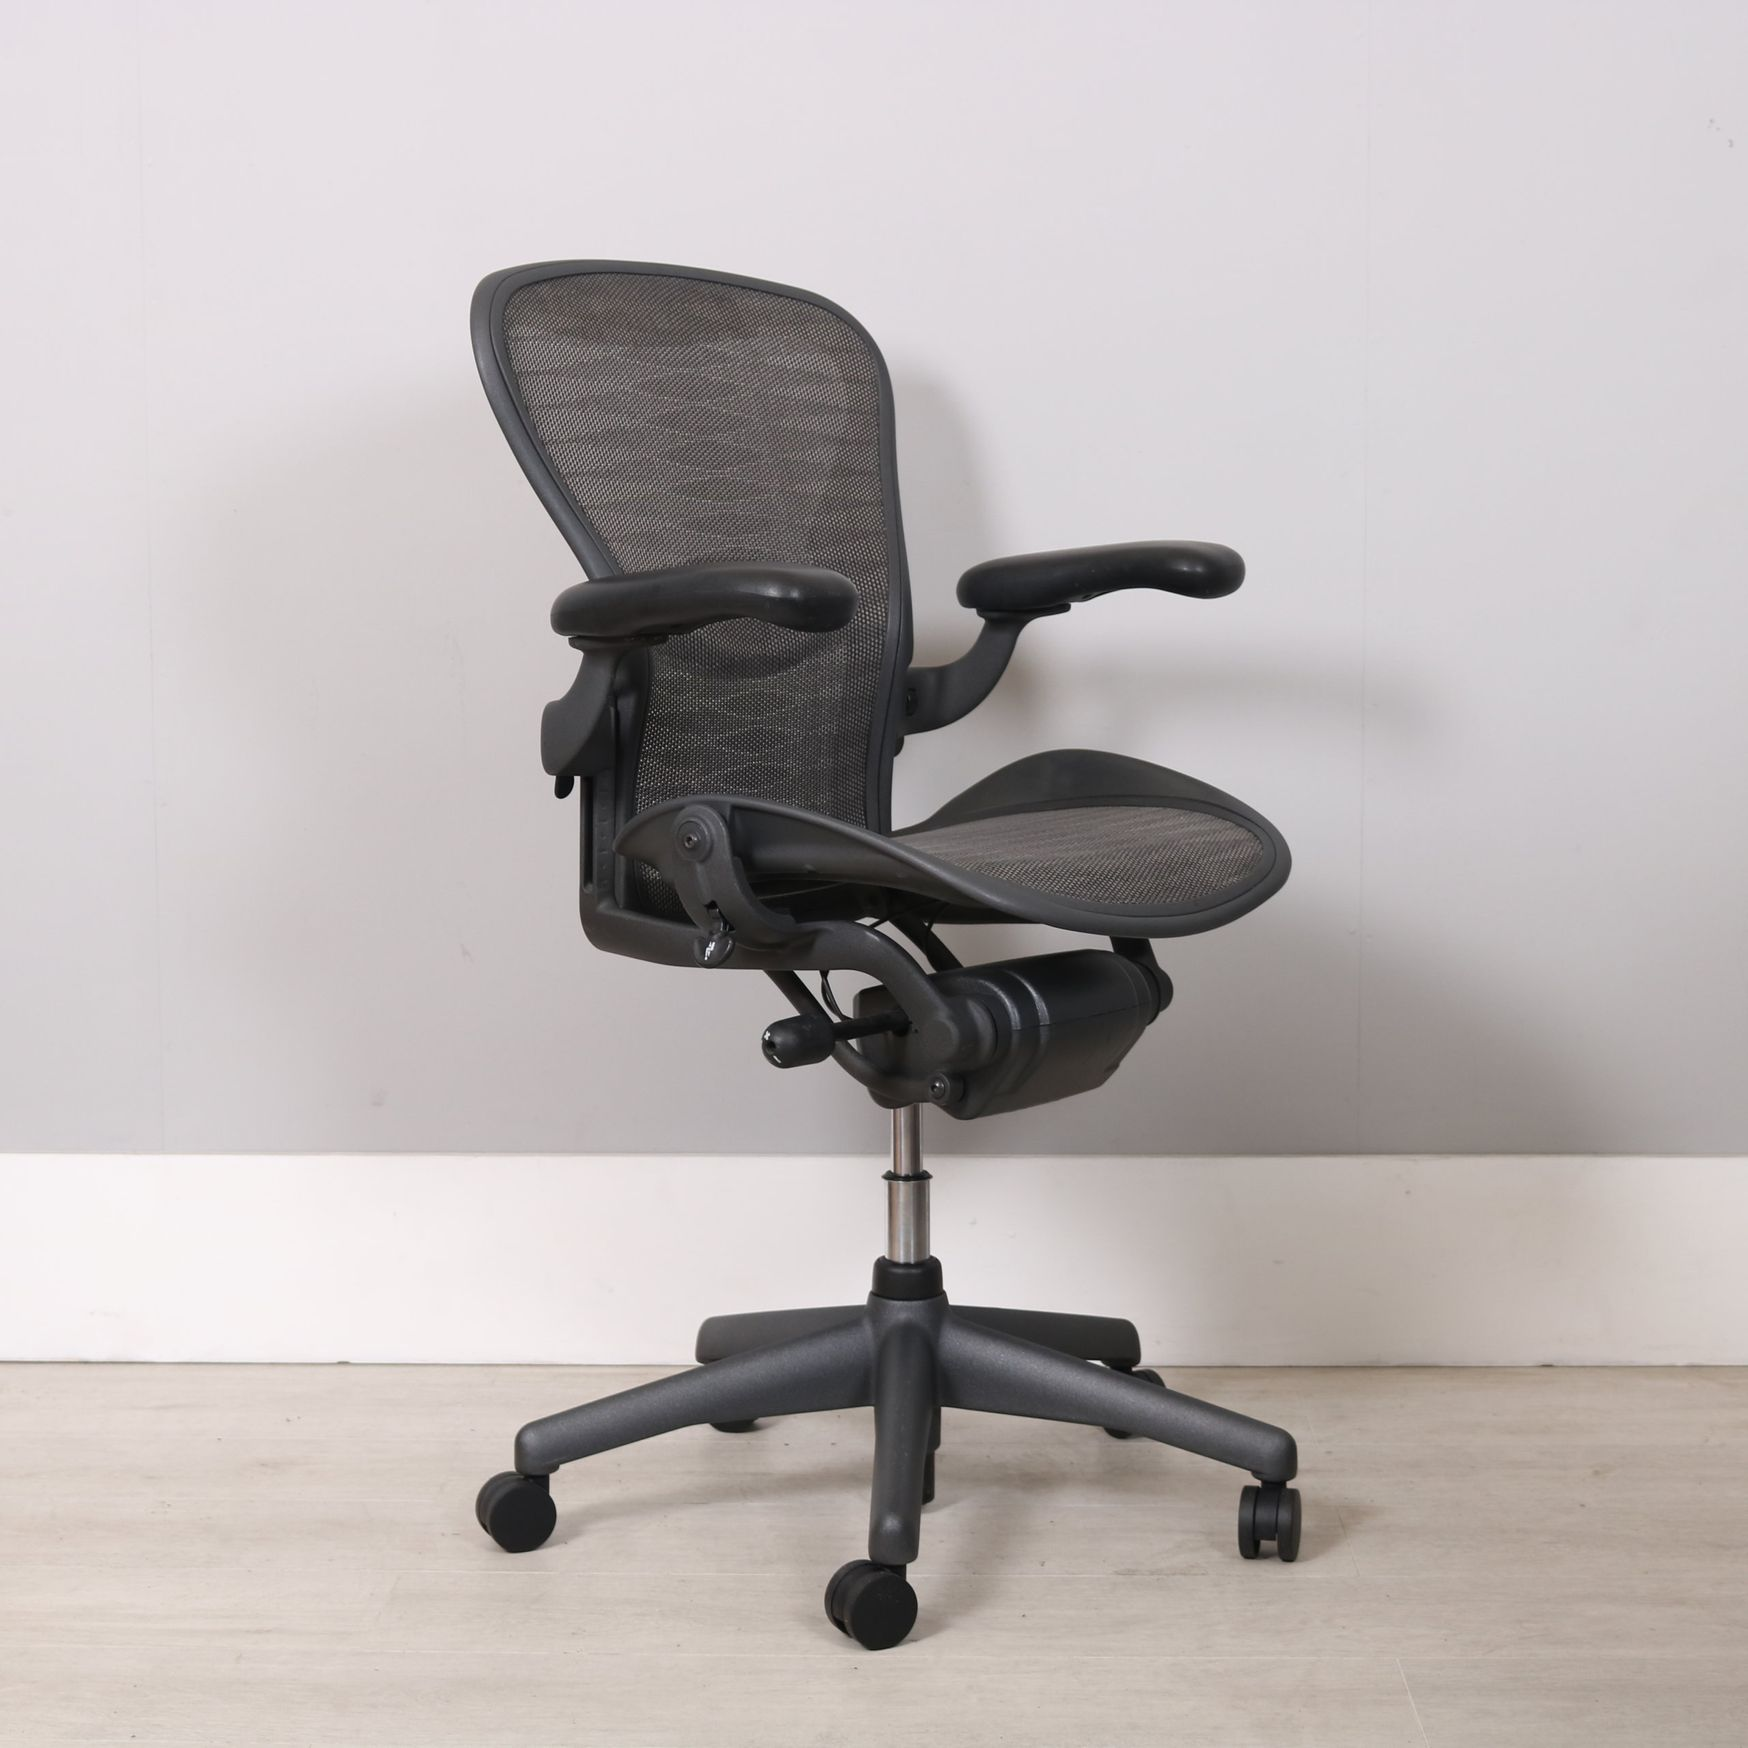 Used Herman Miller Aeron Chairs Size B in Graphite with Tuxedo Mesh